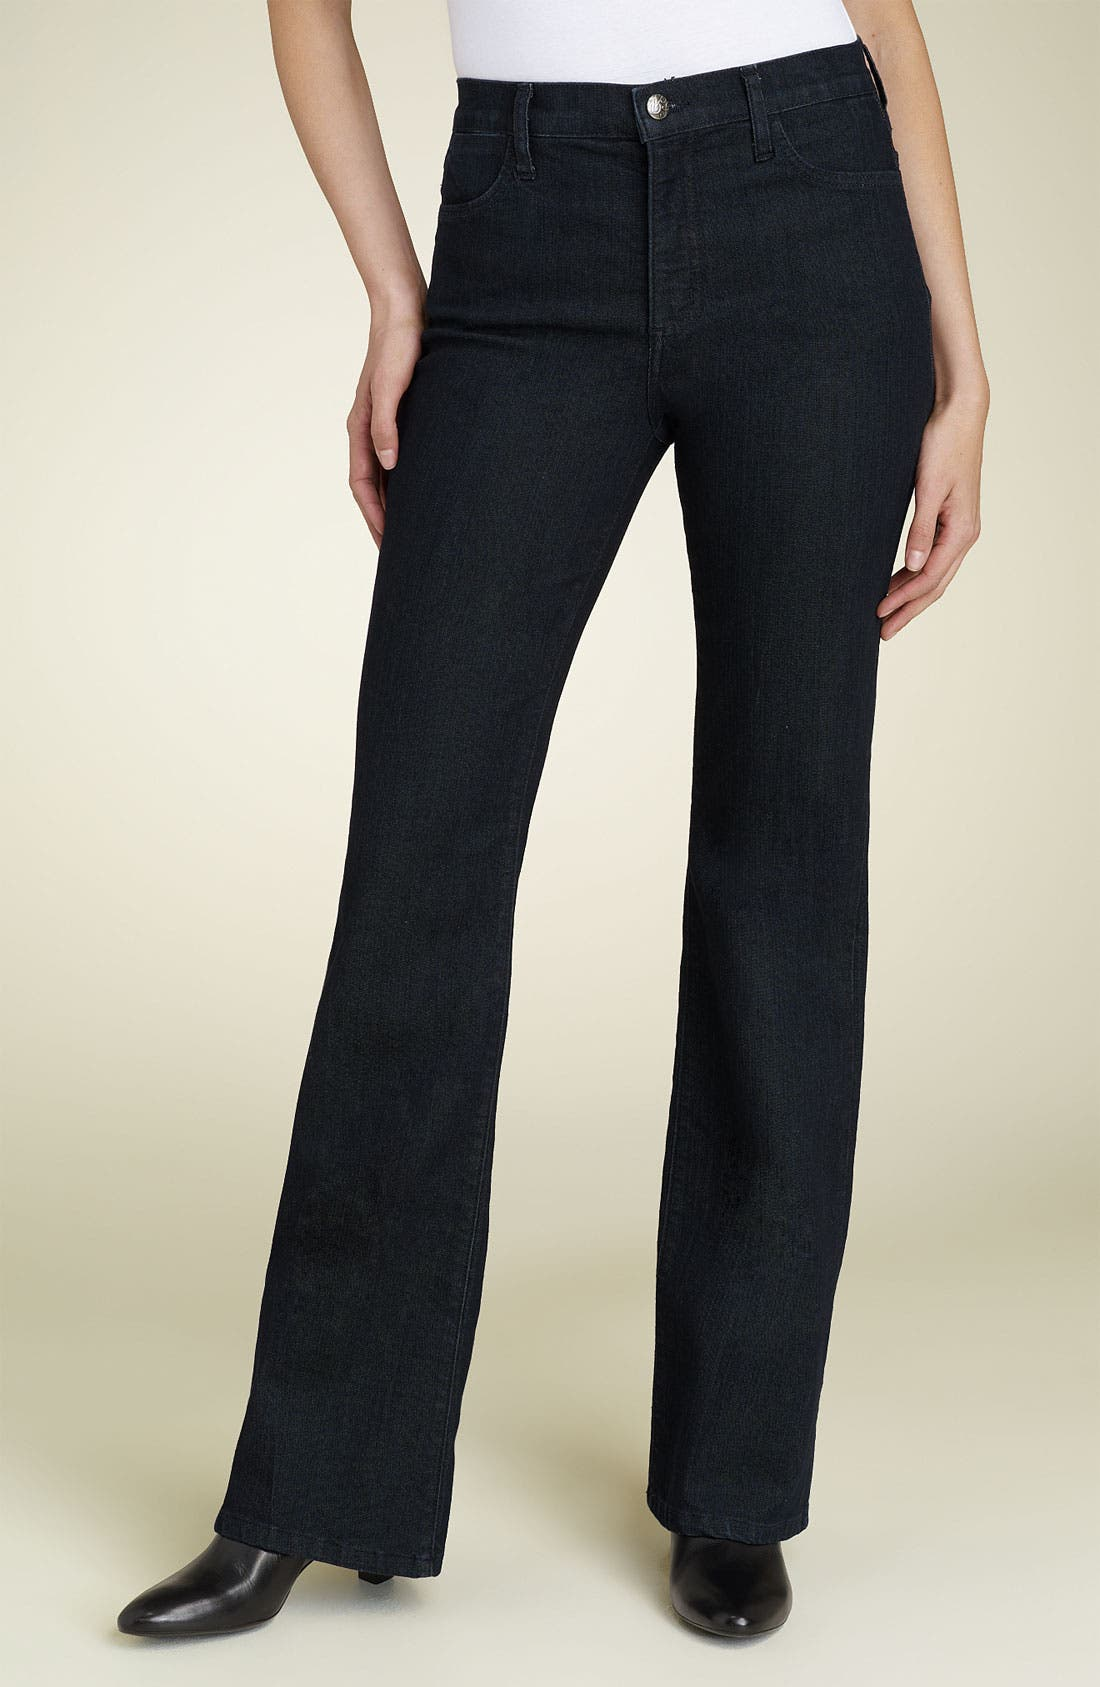 Alternate Image 1 Selected - NYDJ 'Basic' Bootcut Stretch Jeans (Long)